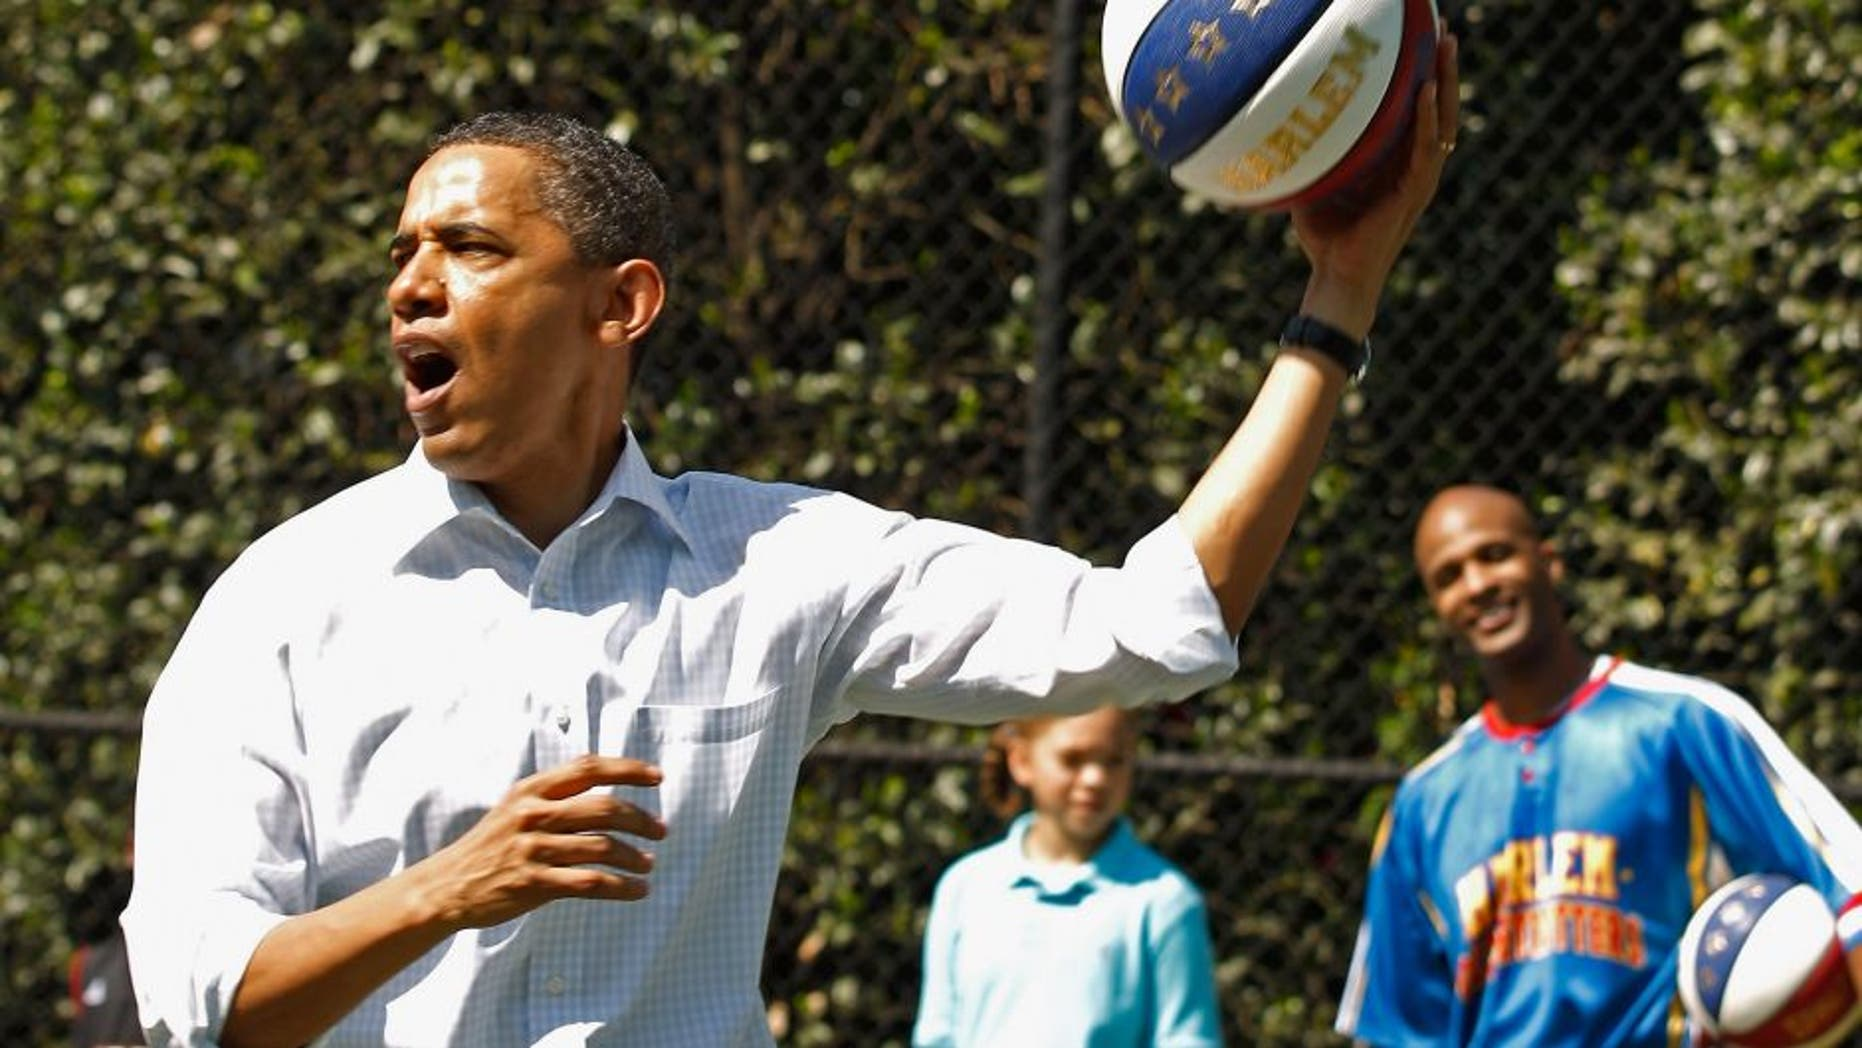 """WASHINGTON, DC - APRIL 25: (AFP OUT) U.S. President Barack Obama shoots a basketball while participating in a """"Let's Move"""" clinic with members of the NBA, WNBA and the Harlem Globetrotters during the White House Easter Egg Roll on the South Lawn of the White House April 25, 2011 in Washington, DC. About 30,000 people are expected to attend the 133-year-old tradition of rolling colored eggs down the White House lawn. (Photo by Chip Somodevilla/Getty Images)"""